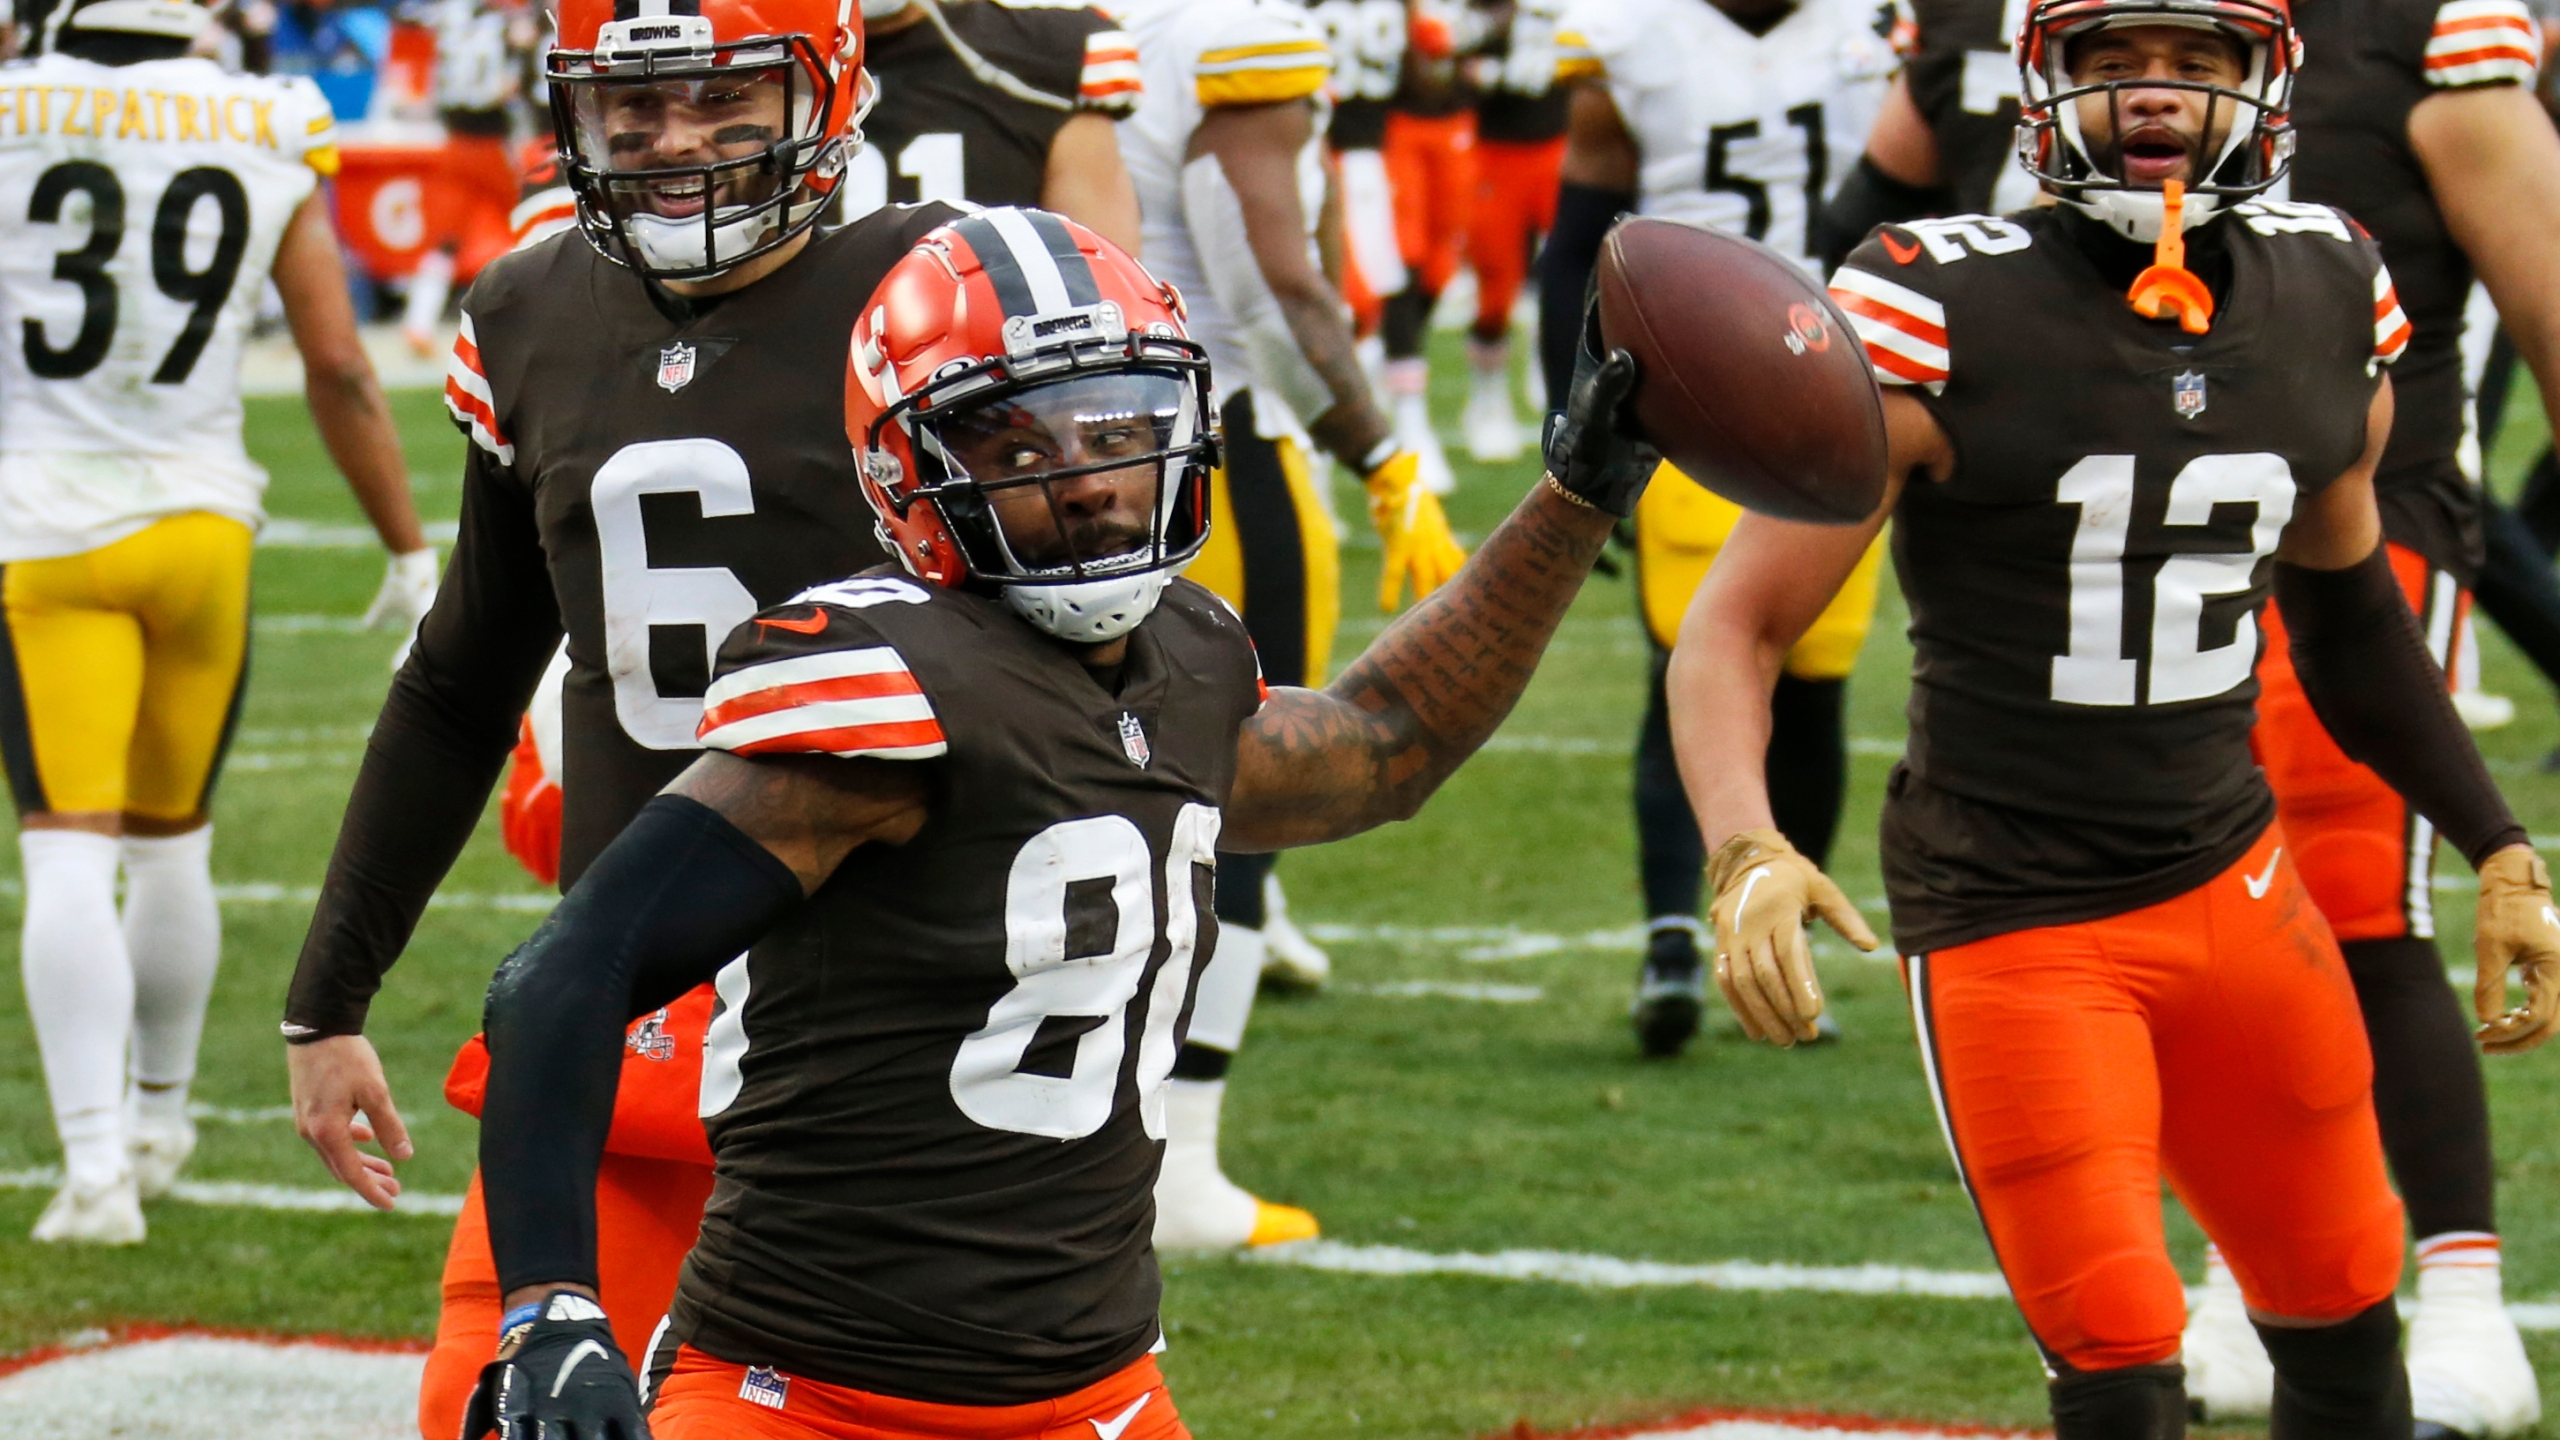 R2 Uenhxiaeqym Find browns radio affiliate listings, listen live, browns audio and more. copyright 2021 the associated press all rights reserved